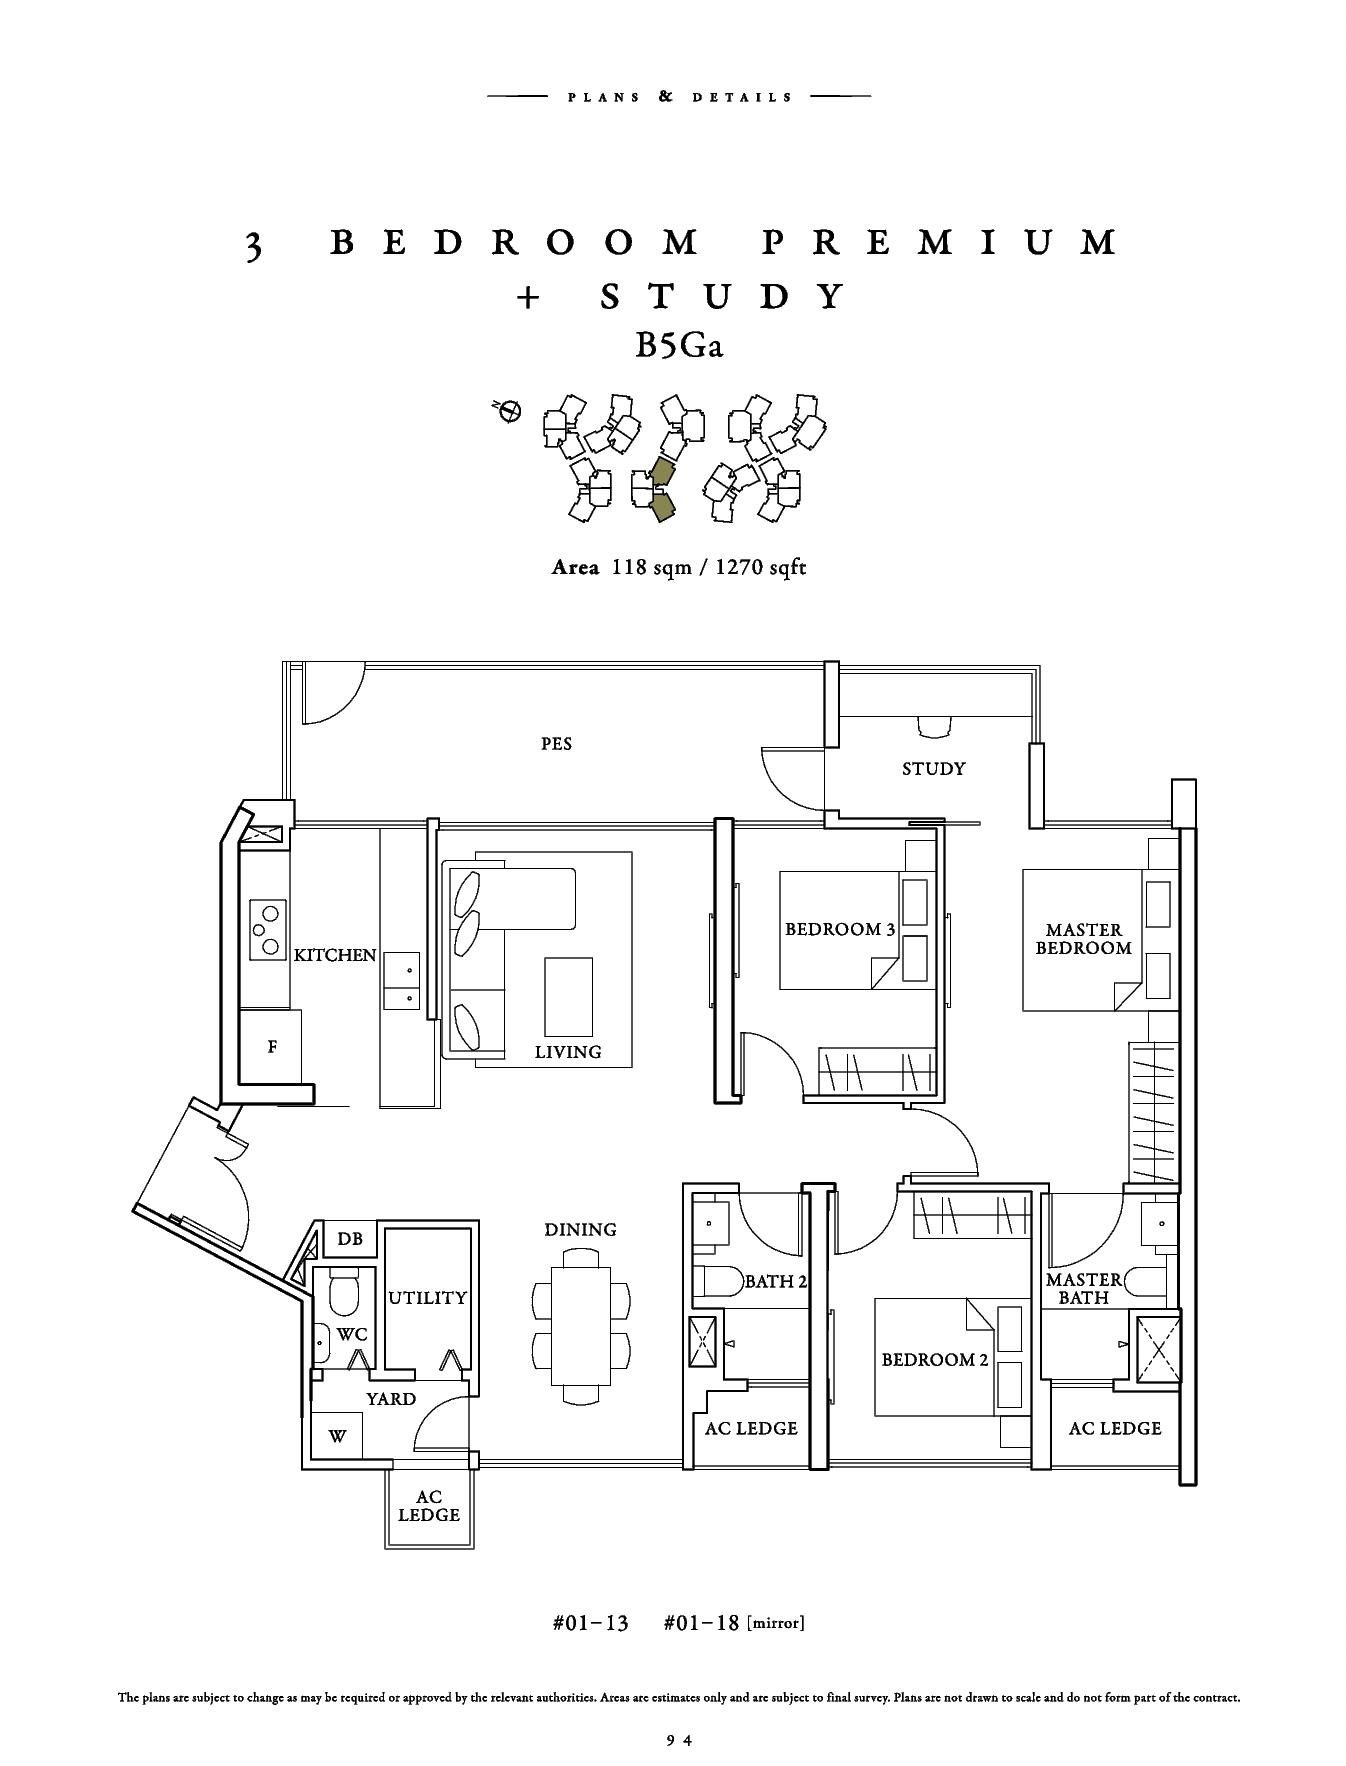 70 St Patrick's 3 Bedroom Premium + Study Floor Plans Type B5Ga